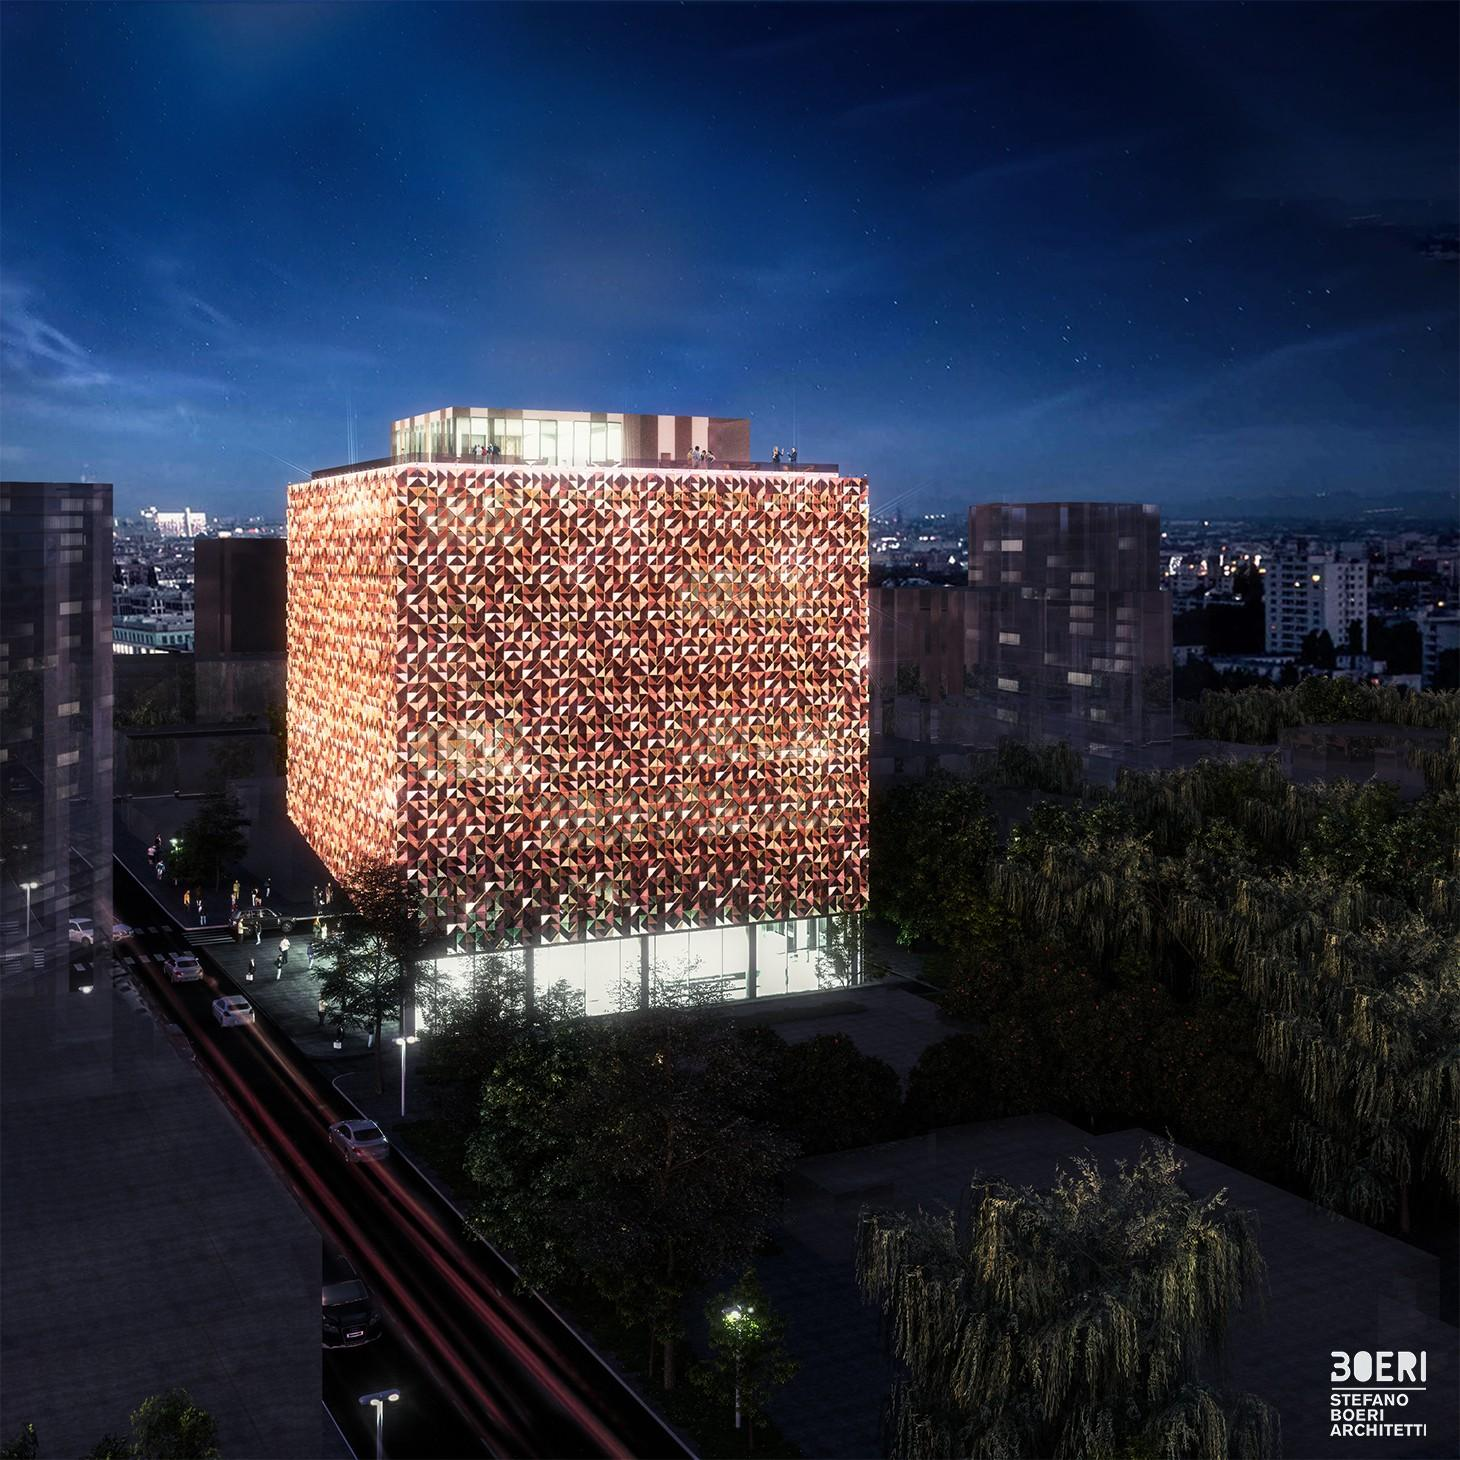 Blloku Cube as it would appear at night / courtesy of Stefano Boeri Architetti